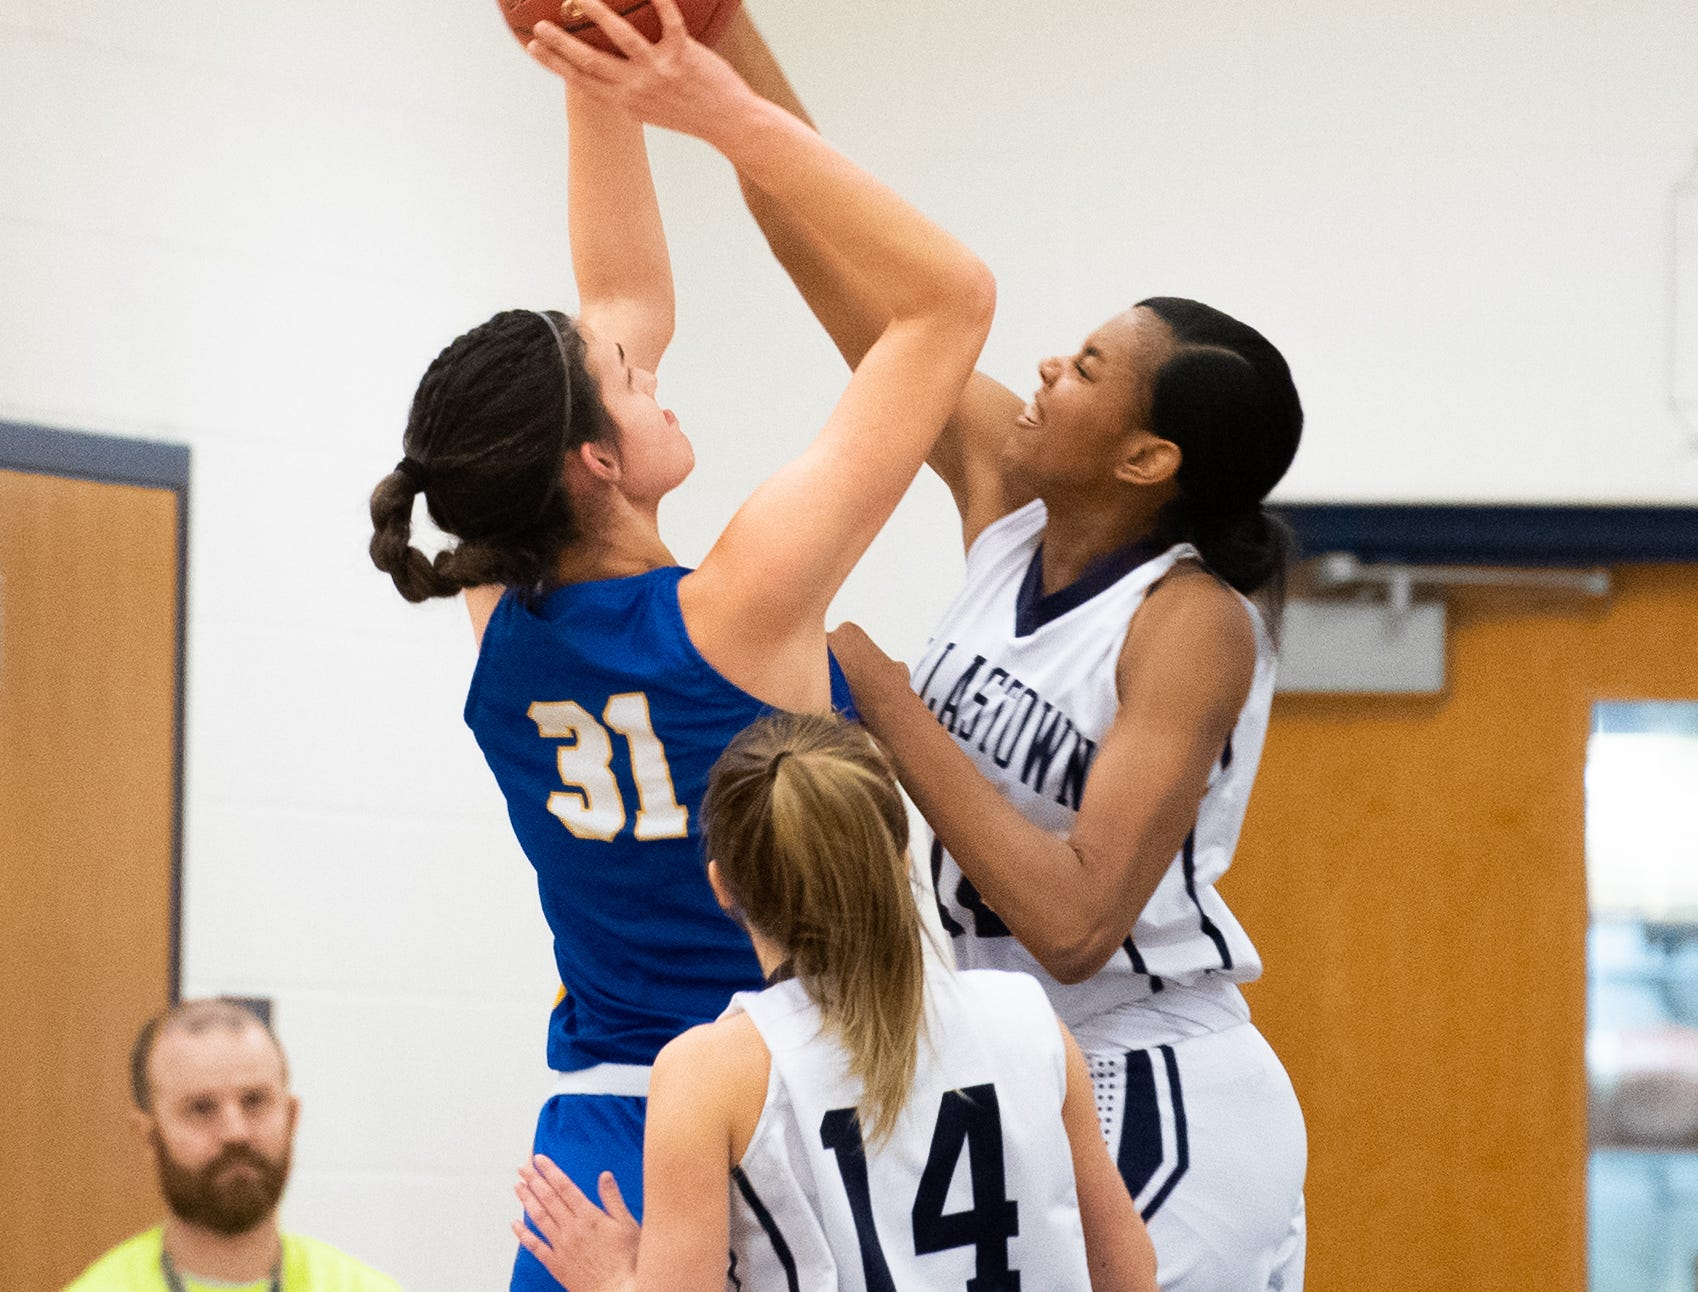 Bella Smuda (31) dodges Aniya Matthews' (22) block during the PIAA first round girls' basketball game between Dallastown and Downingtown East Friday, March 8, 2019 at West York Area High School. The Wildcats defeated the Cougars 43 to 39.